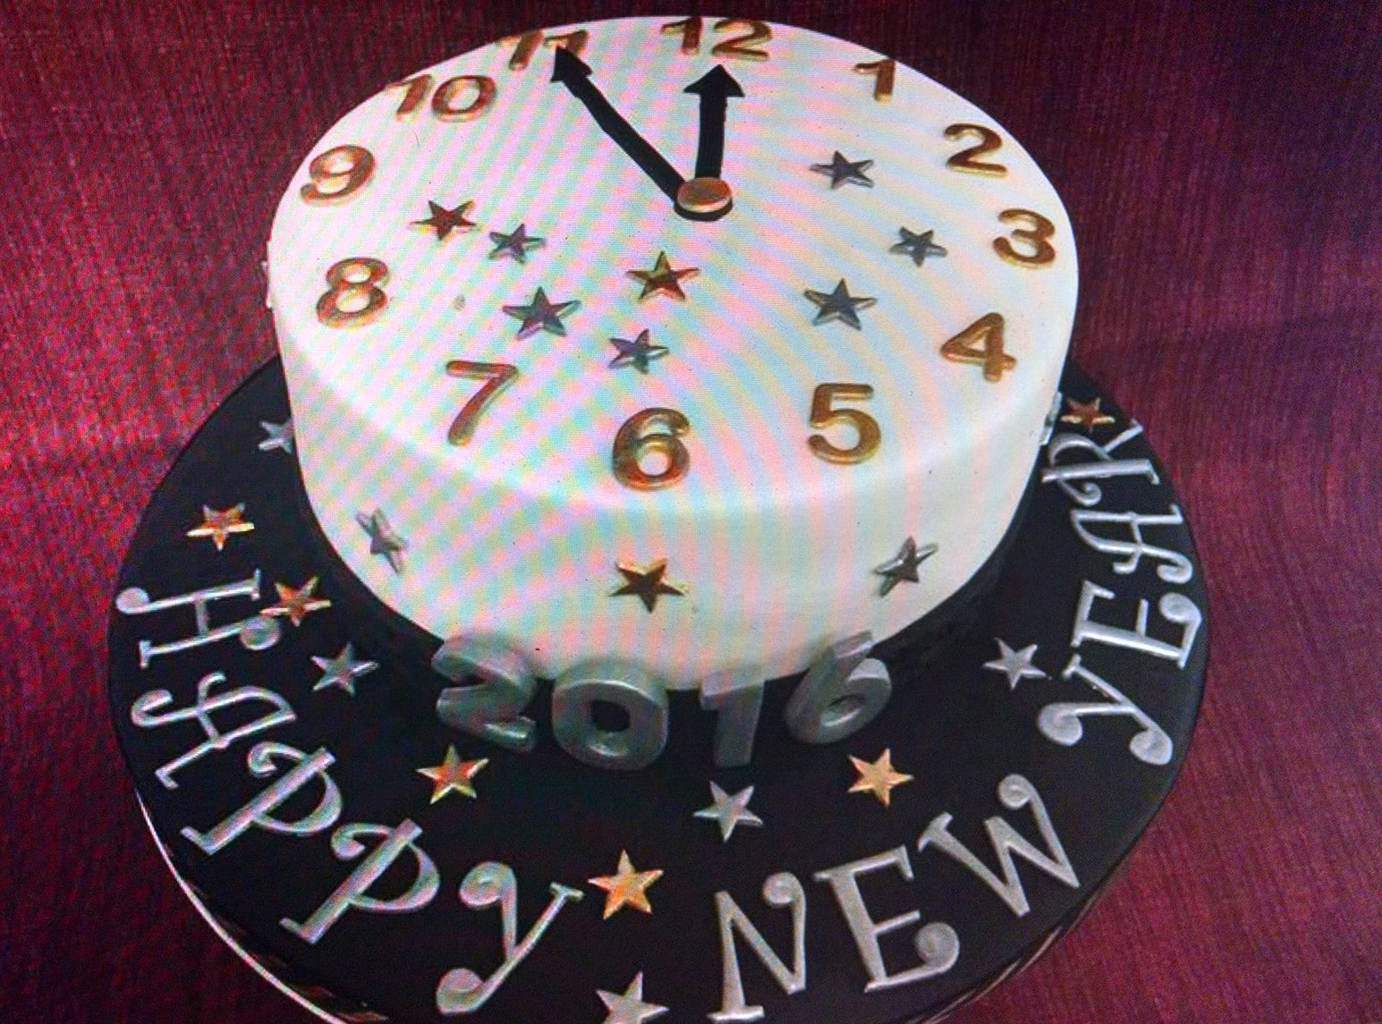 Cake New Years Eve 2018 : CAKE GALLERY - Sugartime Confections